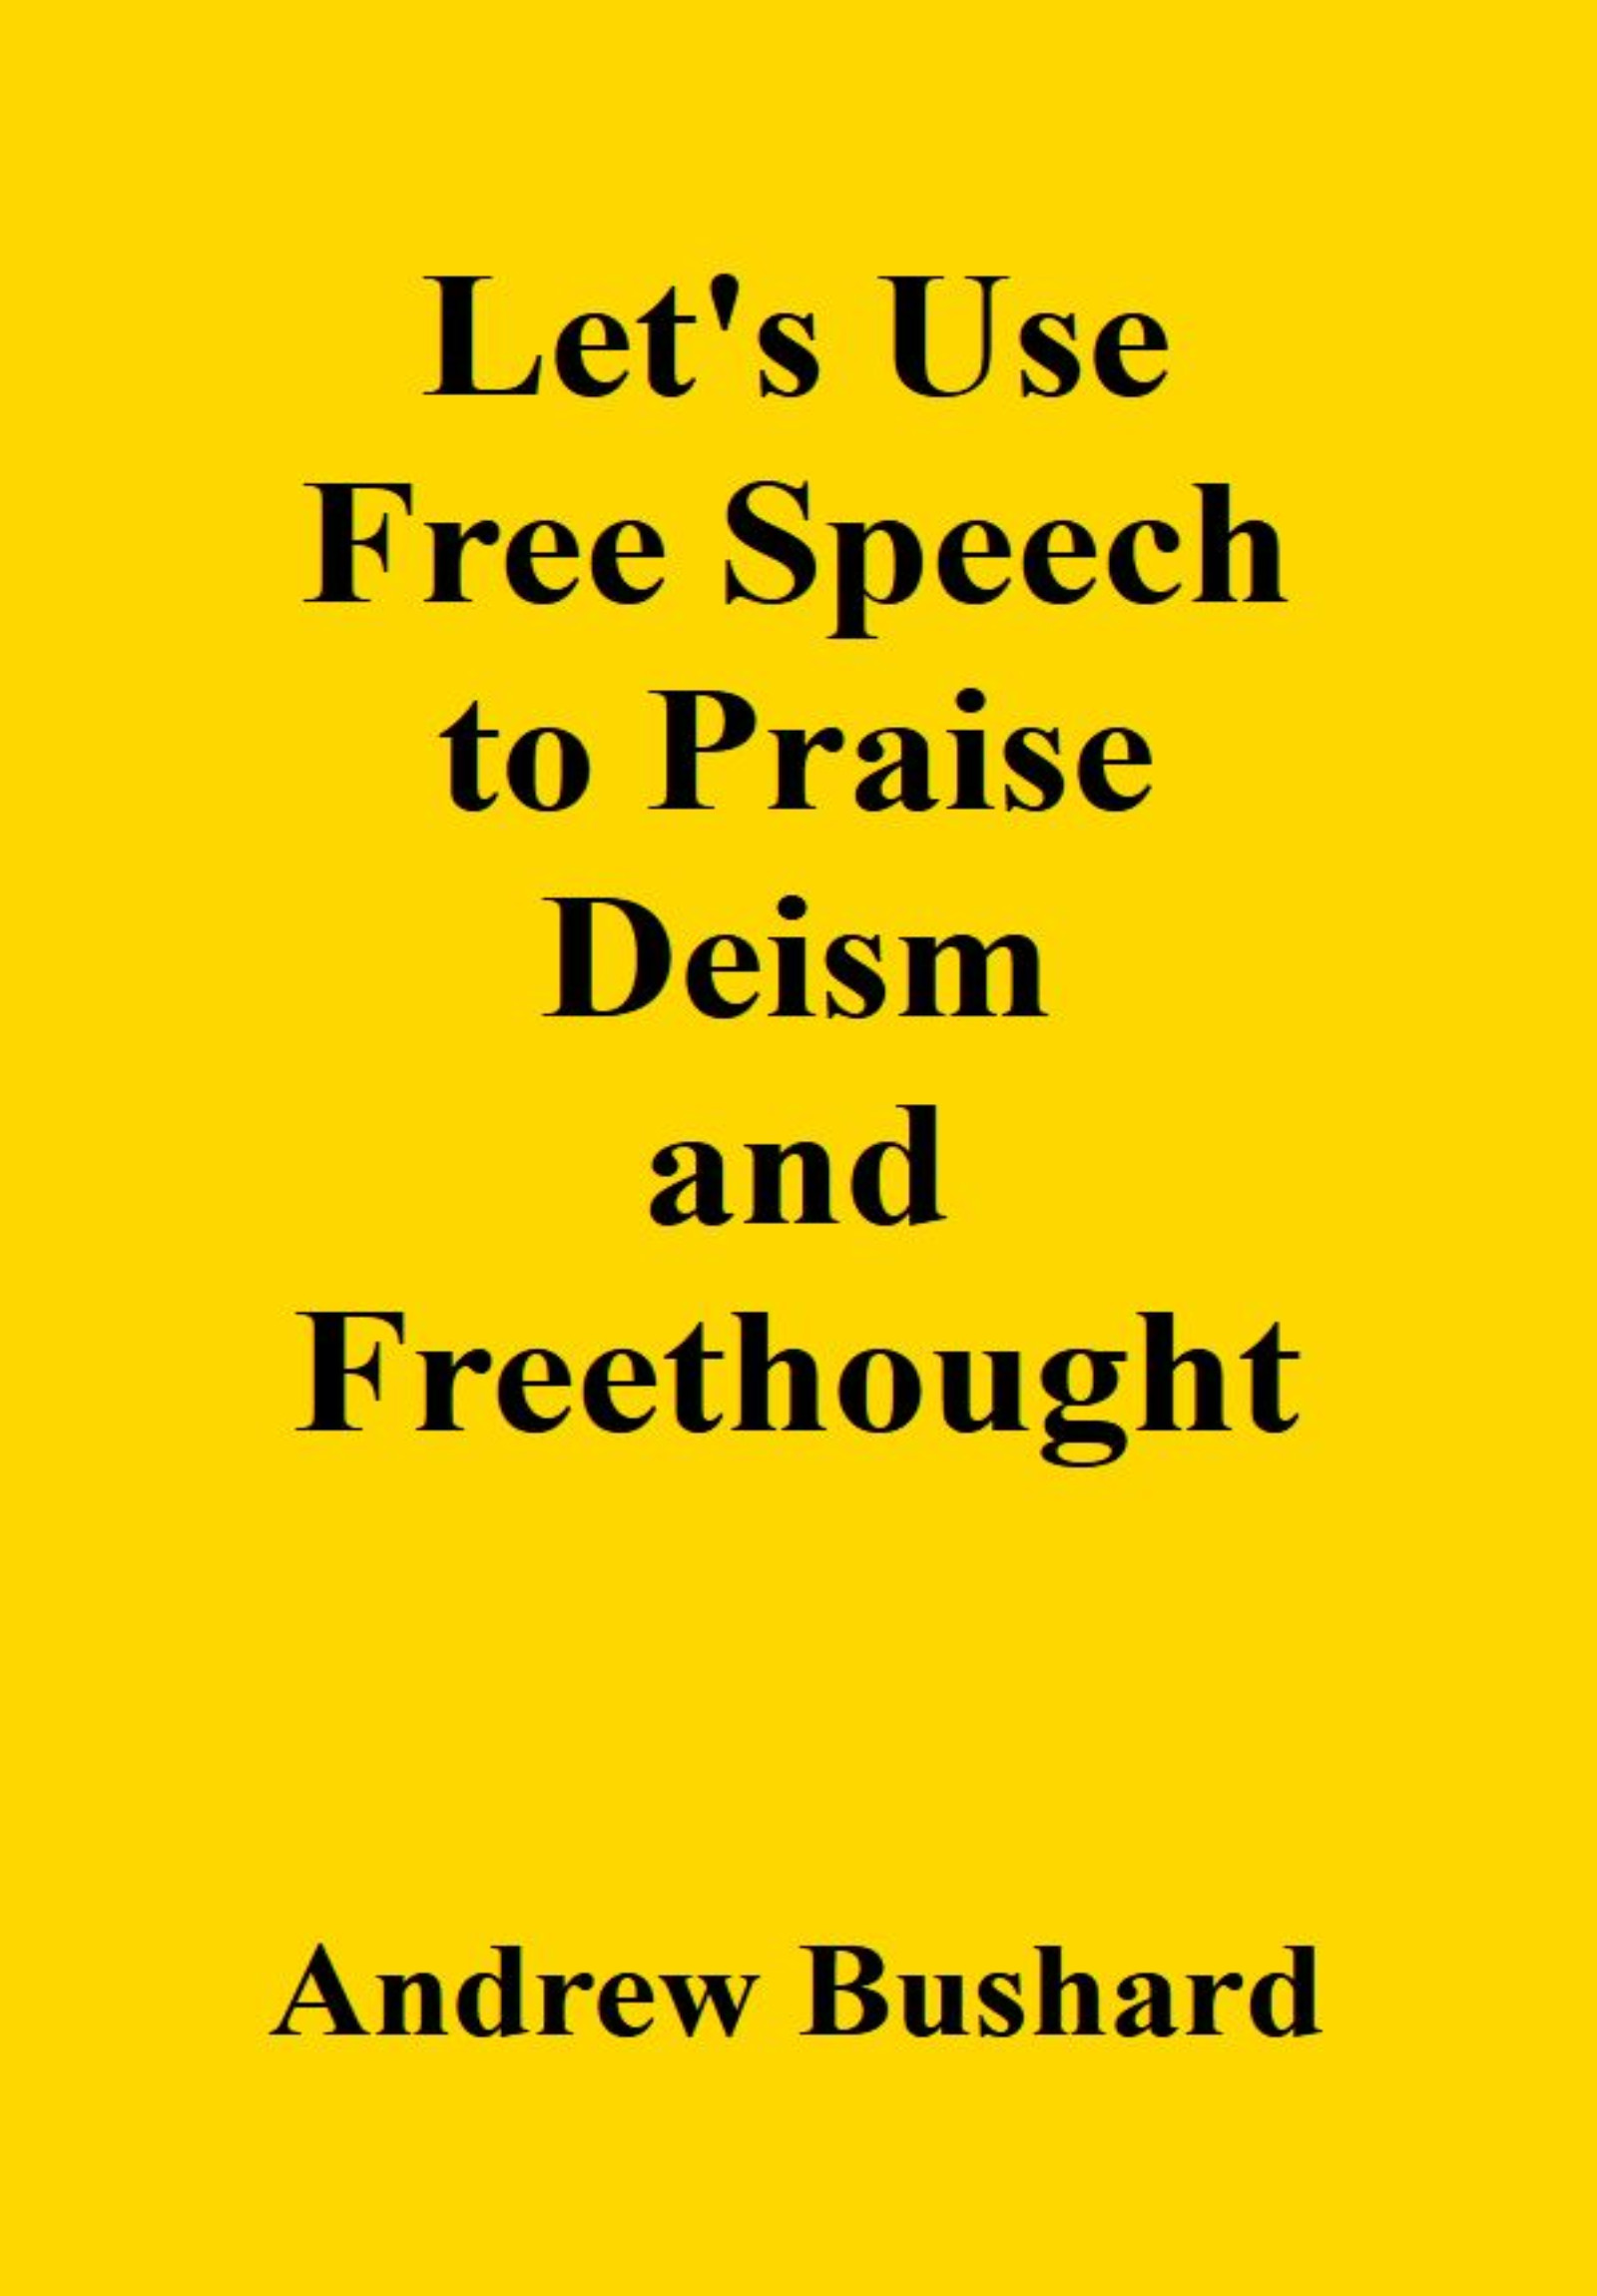 Let's Use Free Speech to Praise Deism and Freethought